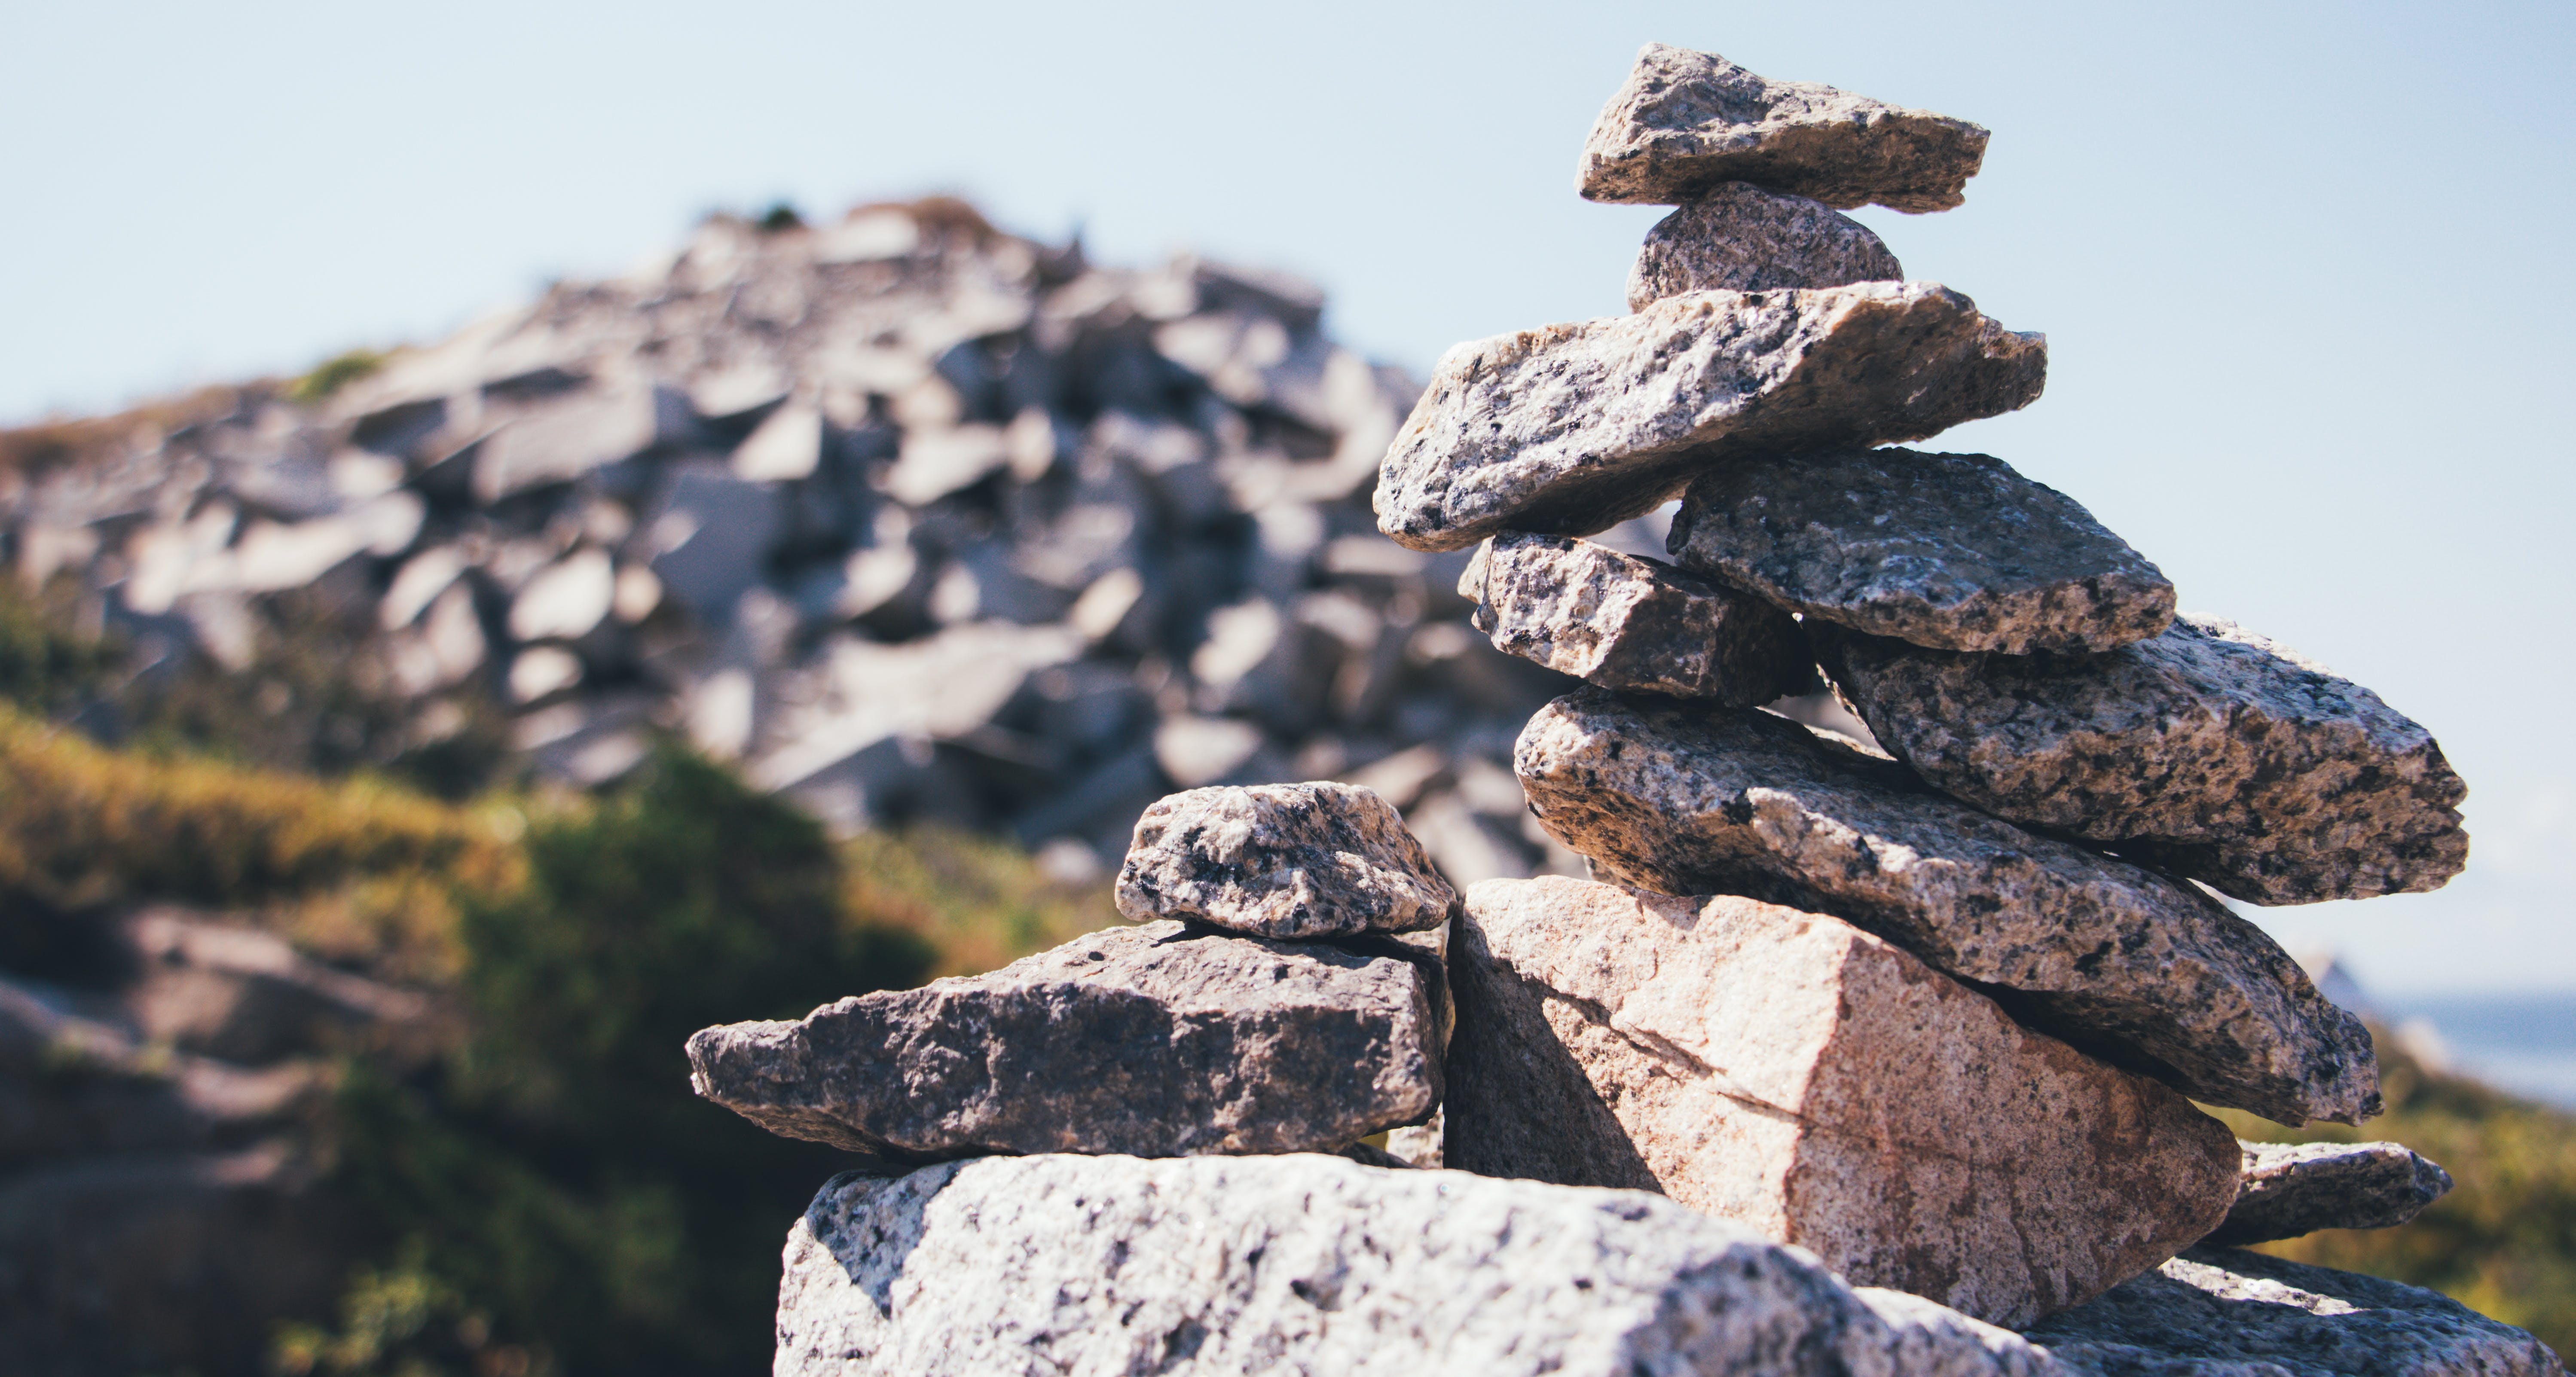 Selective Photo of Grey Stacked Stones